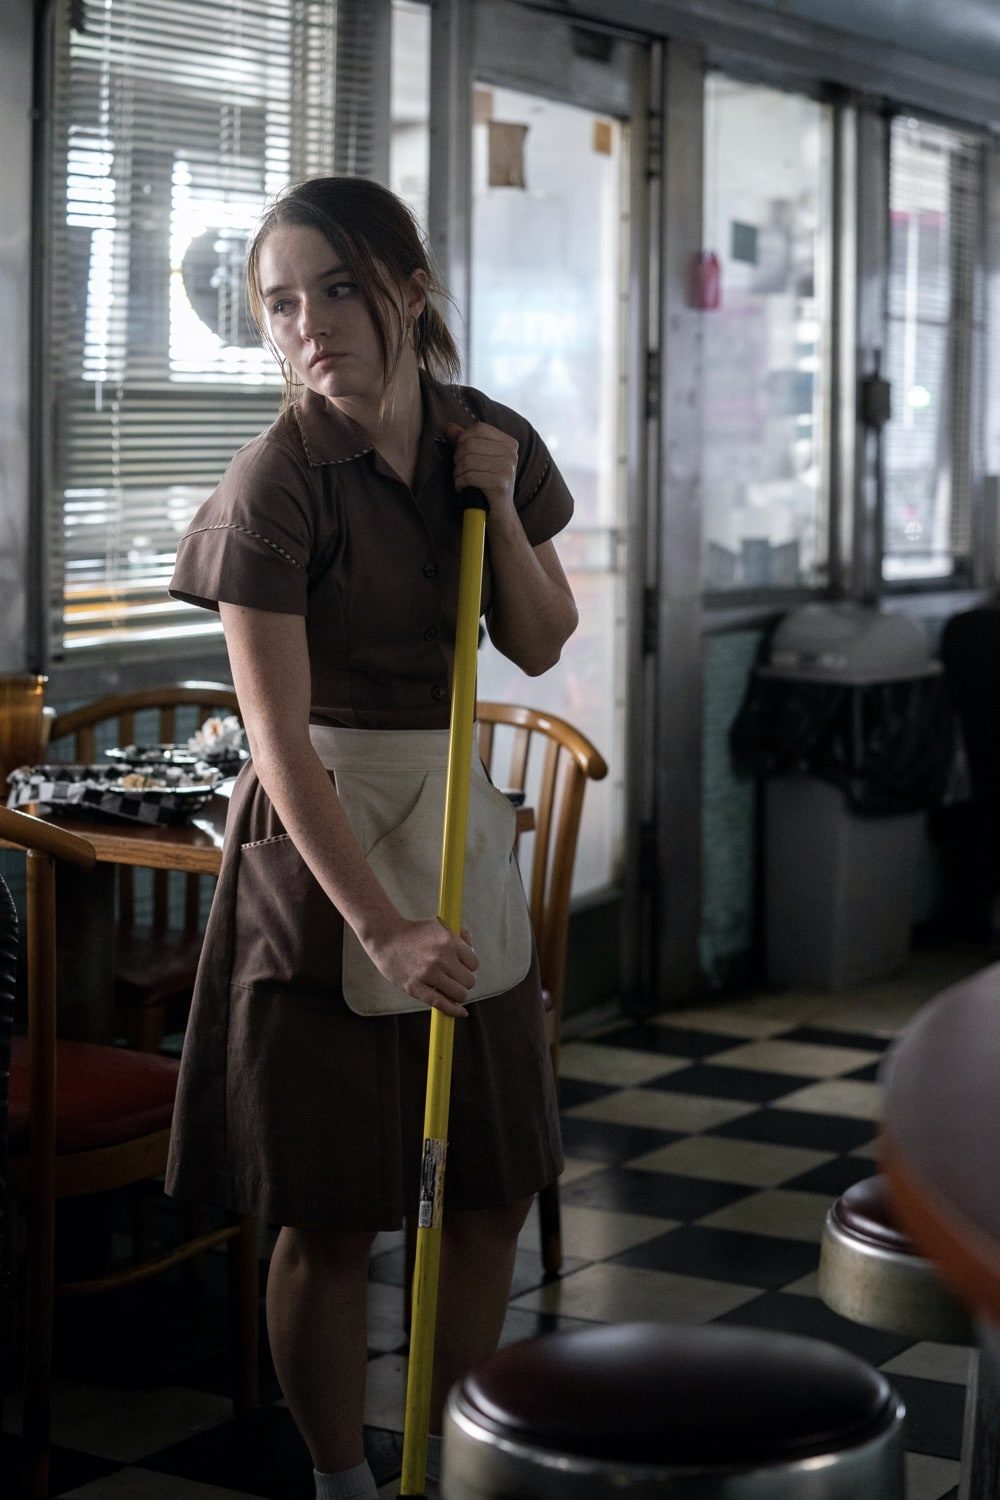 "Monsterland -- ""Port Fourchon, LA"" - Episode 101 -- A down-and-out waitress questions her choices. Toni (Kaitlyn Dever), shown. (Photo by: Barbara Nitke/Hulu)"